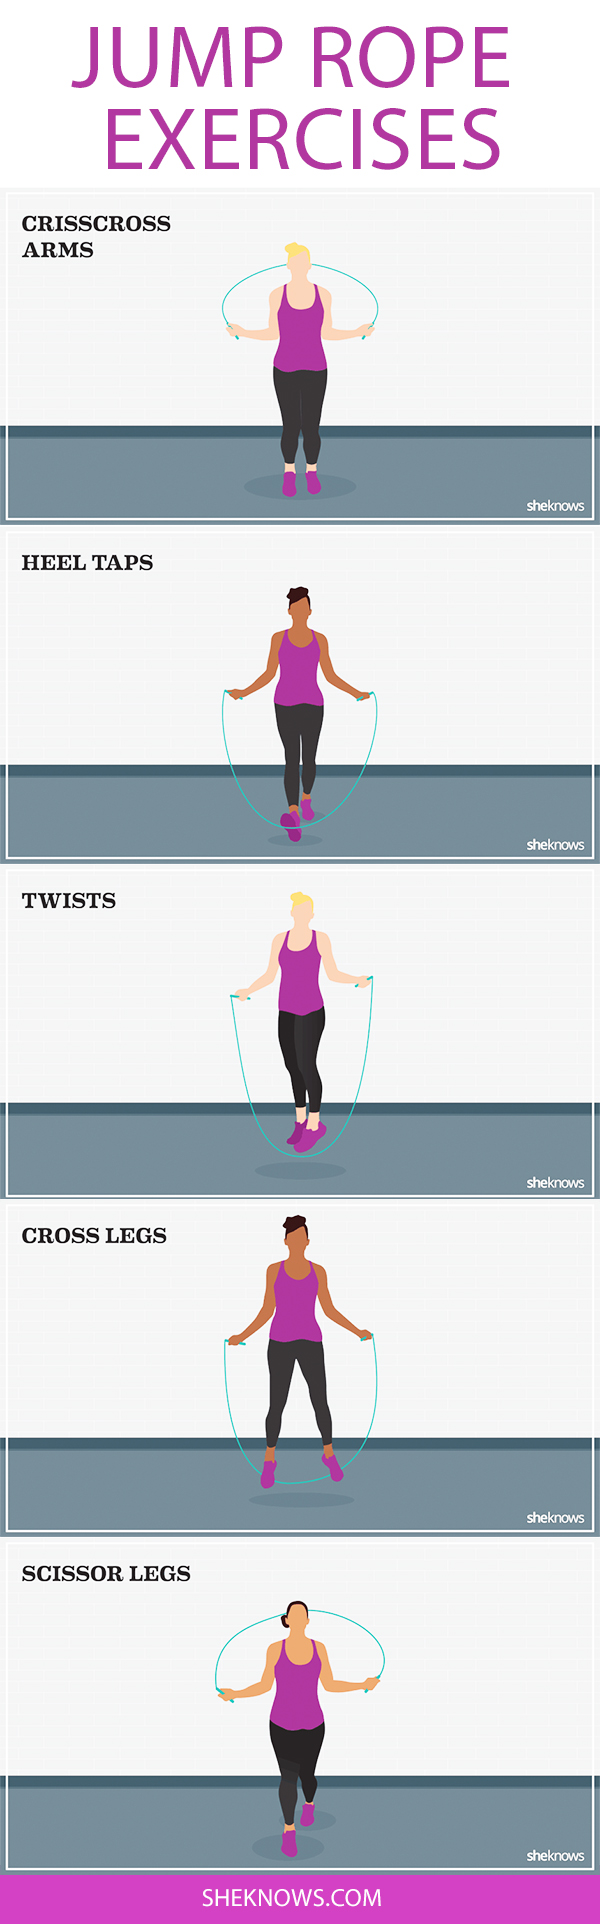 Pin it! Jump rope exercises